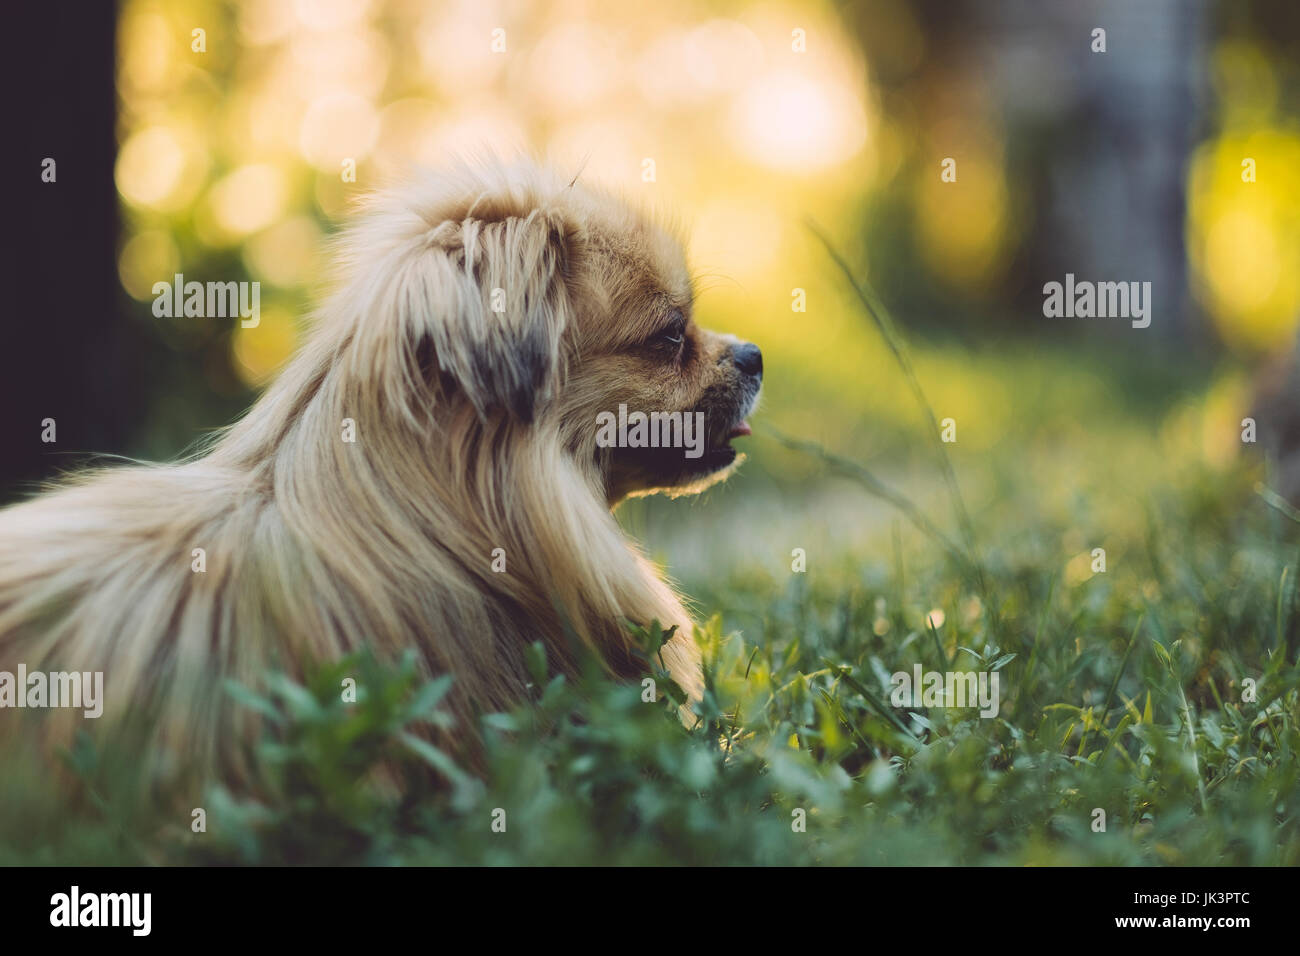 Pekingese dog Stock Photo